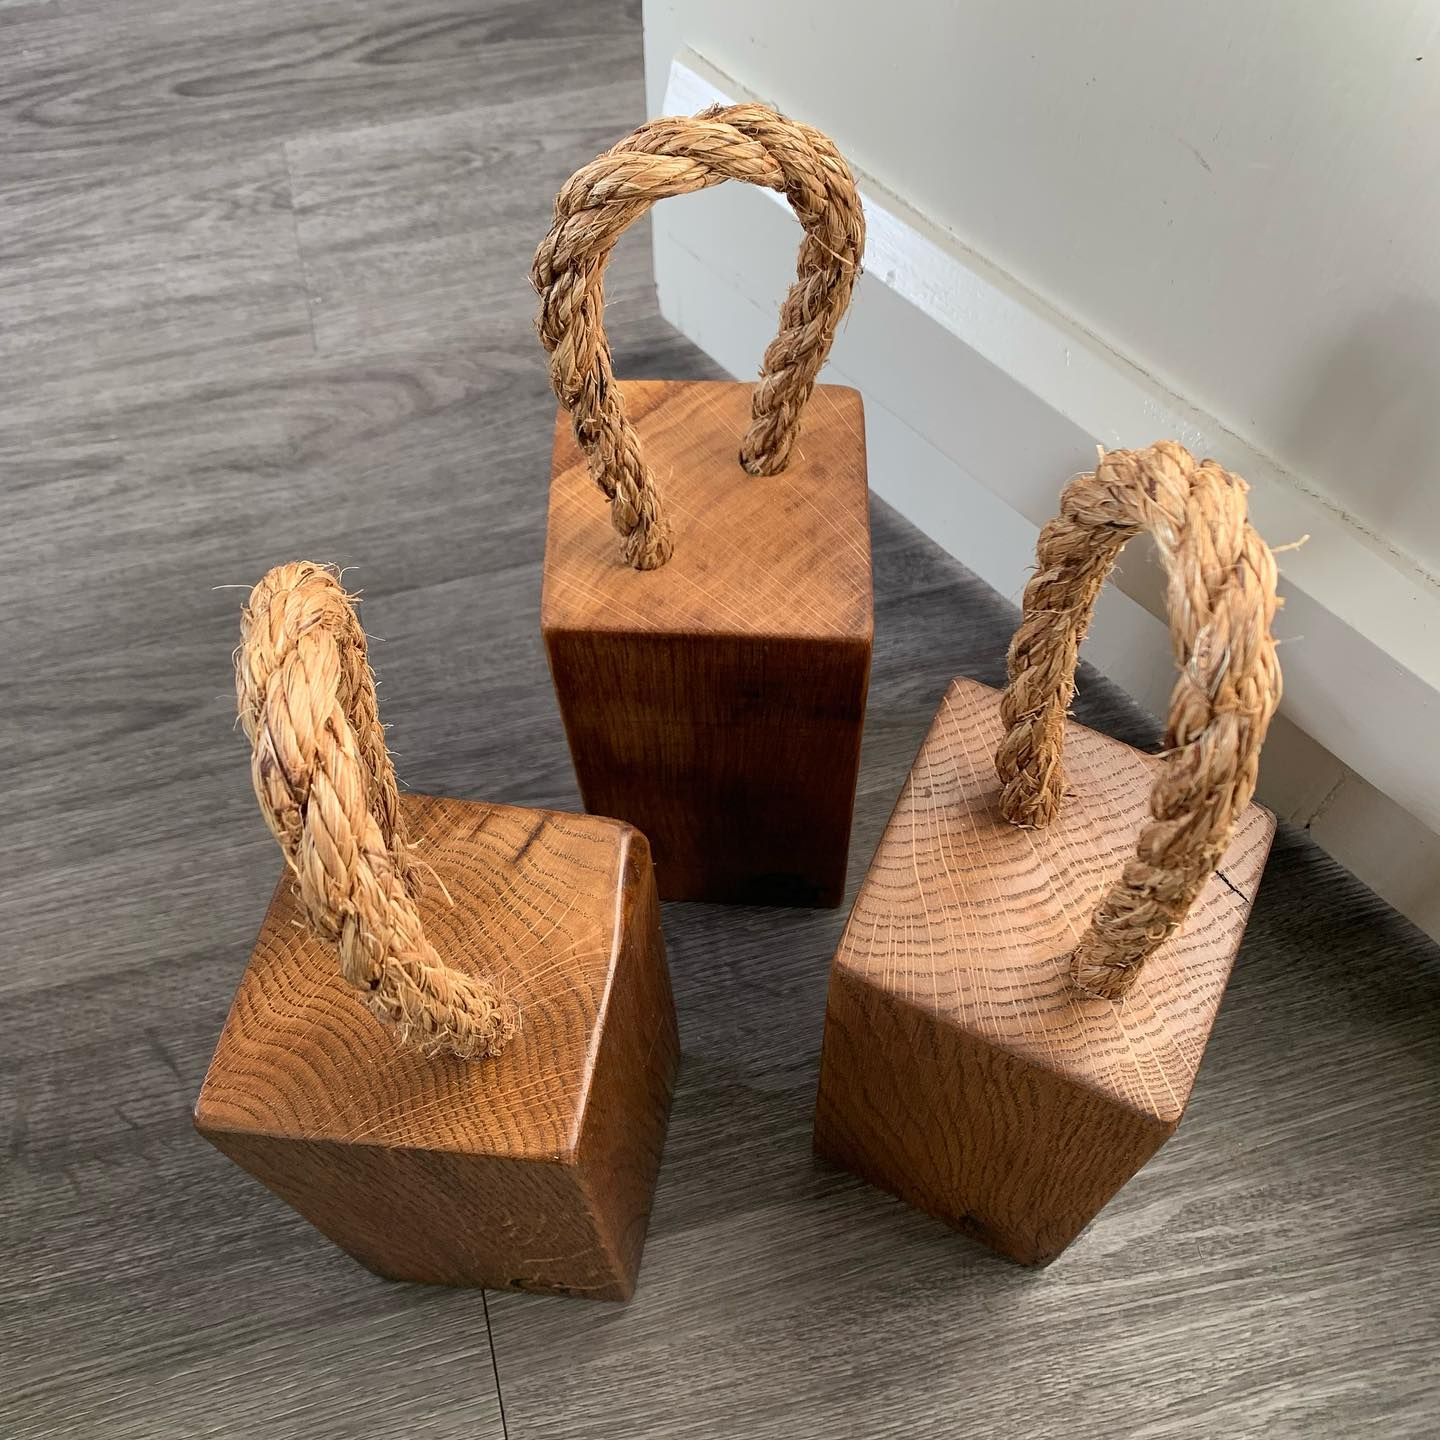 Extra Character standard doorstops are now restocked and the large are almost ready.It's full steam ahead this week with sanding and finishing in time for the opening of the @clevedonsundaymarket online Christmas shop! Head over to their feed for more info and links to the shop. ...#christmasshopping #shopsmall #supportindependentbusinesses #clevedon #bristol #marketday #festiveseason #uniquegifts #localcraft #artisan #gingerandtweed